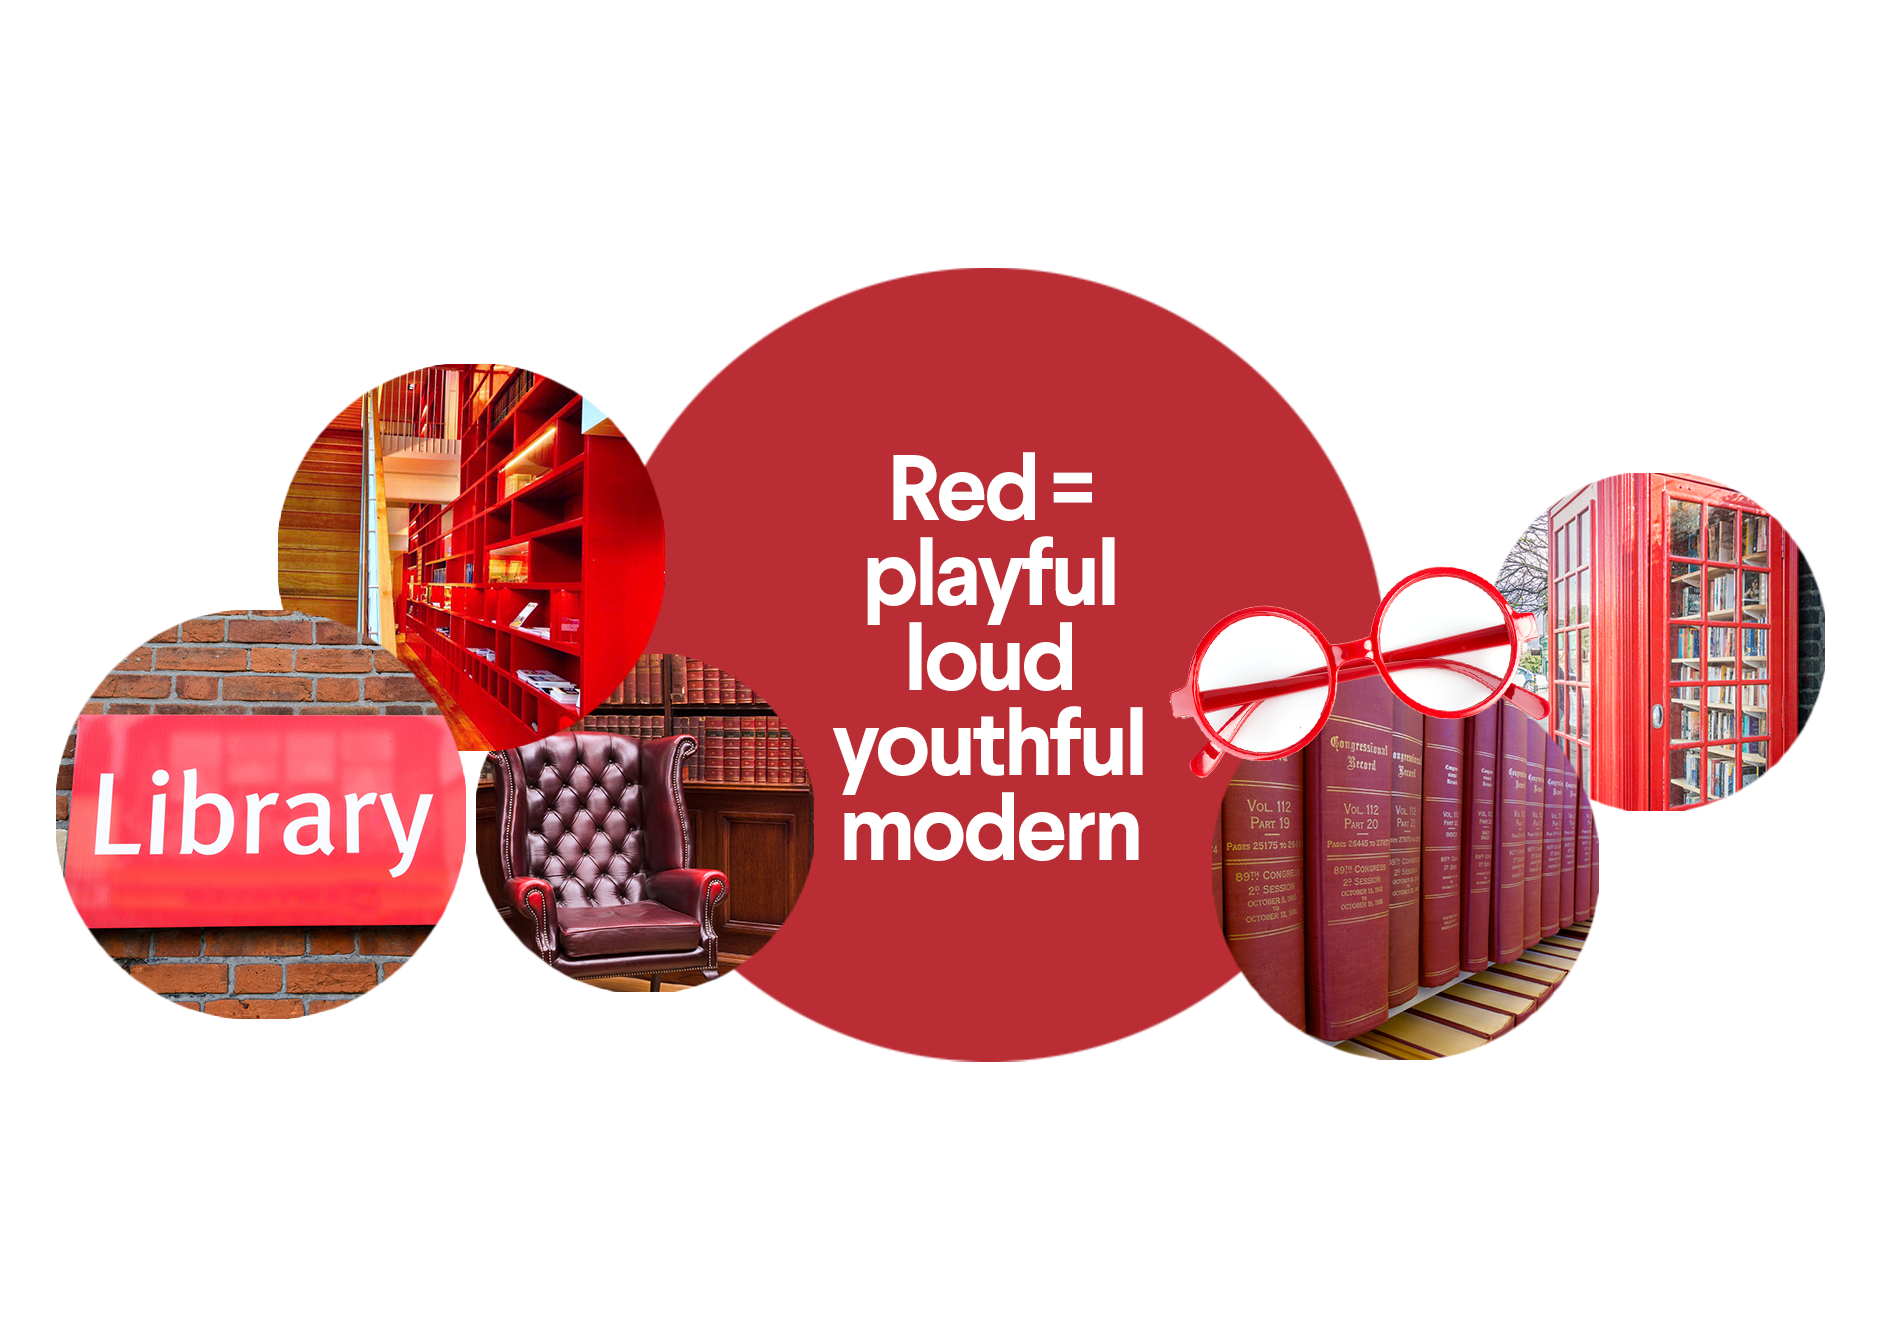 Red brand color inspiration